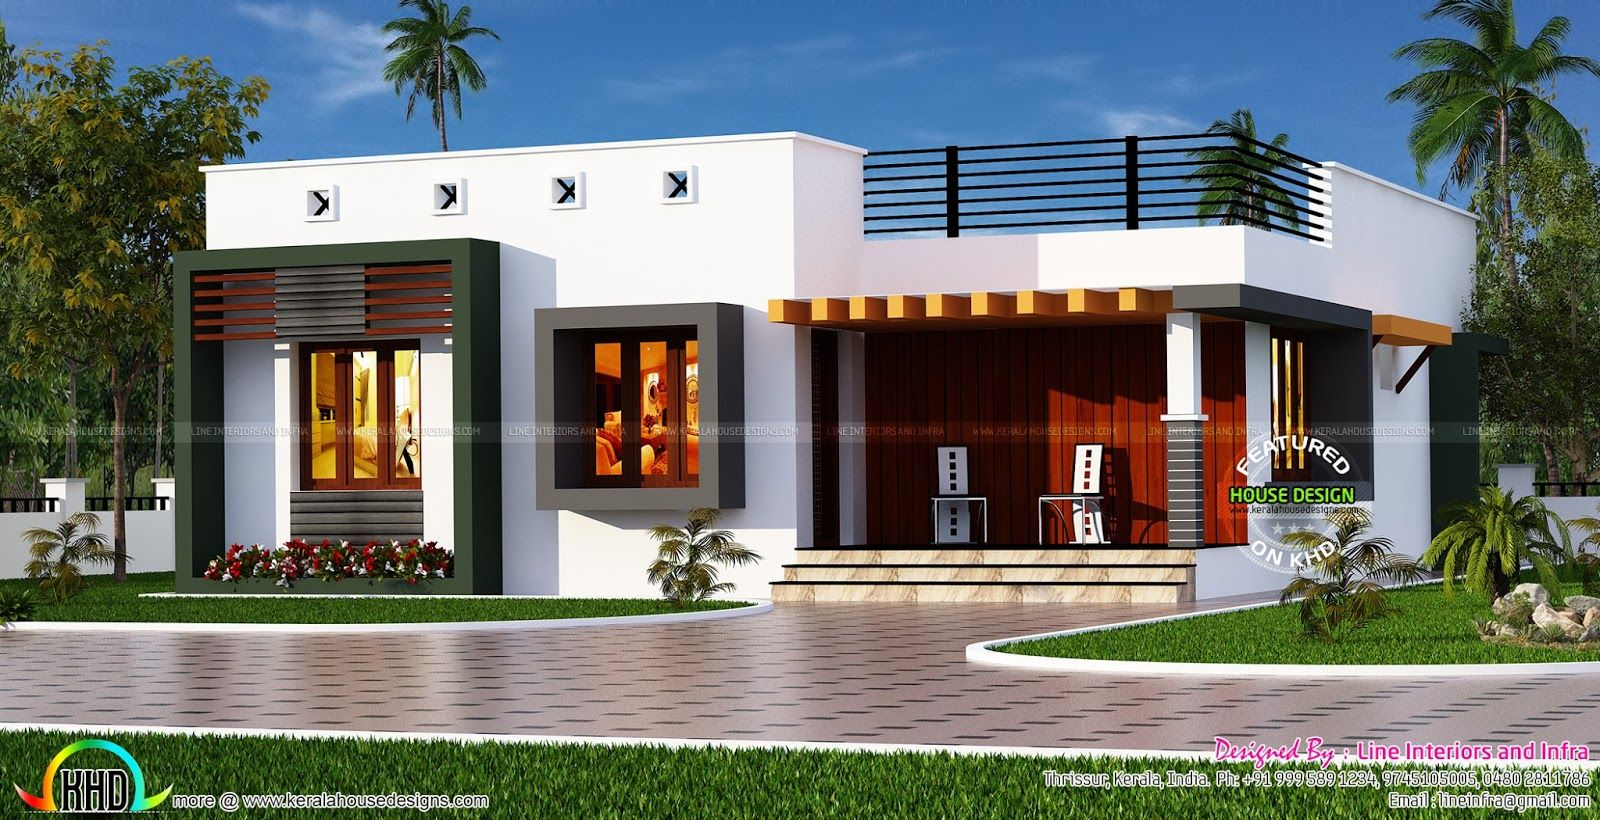 Box type single floor house also photos of small beautiful and cute bungalow design ideal rh pinterest